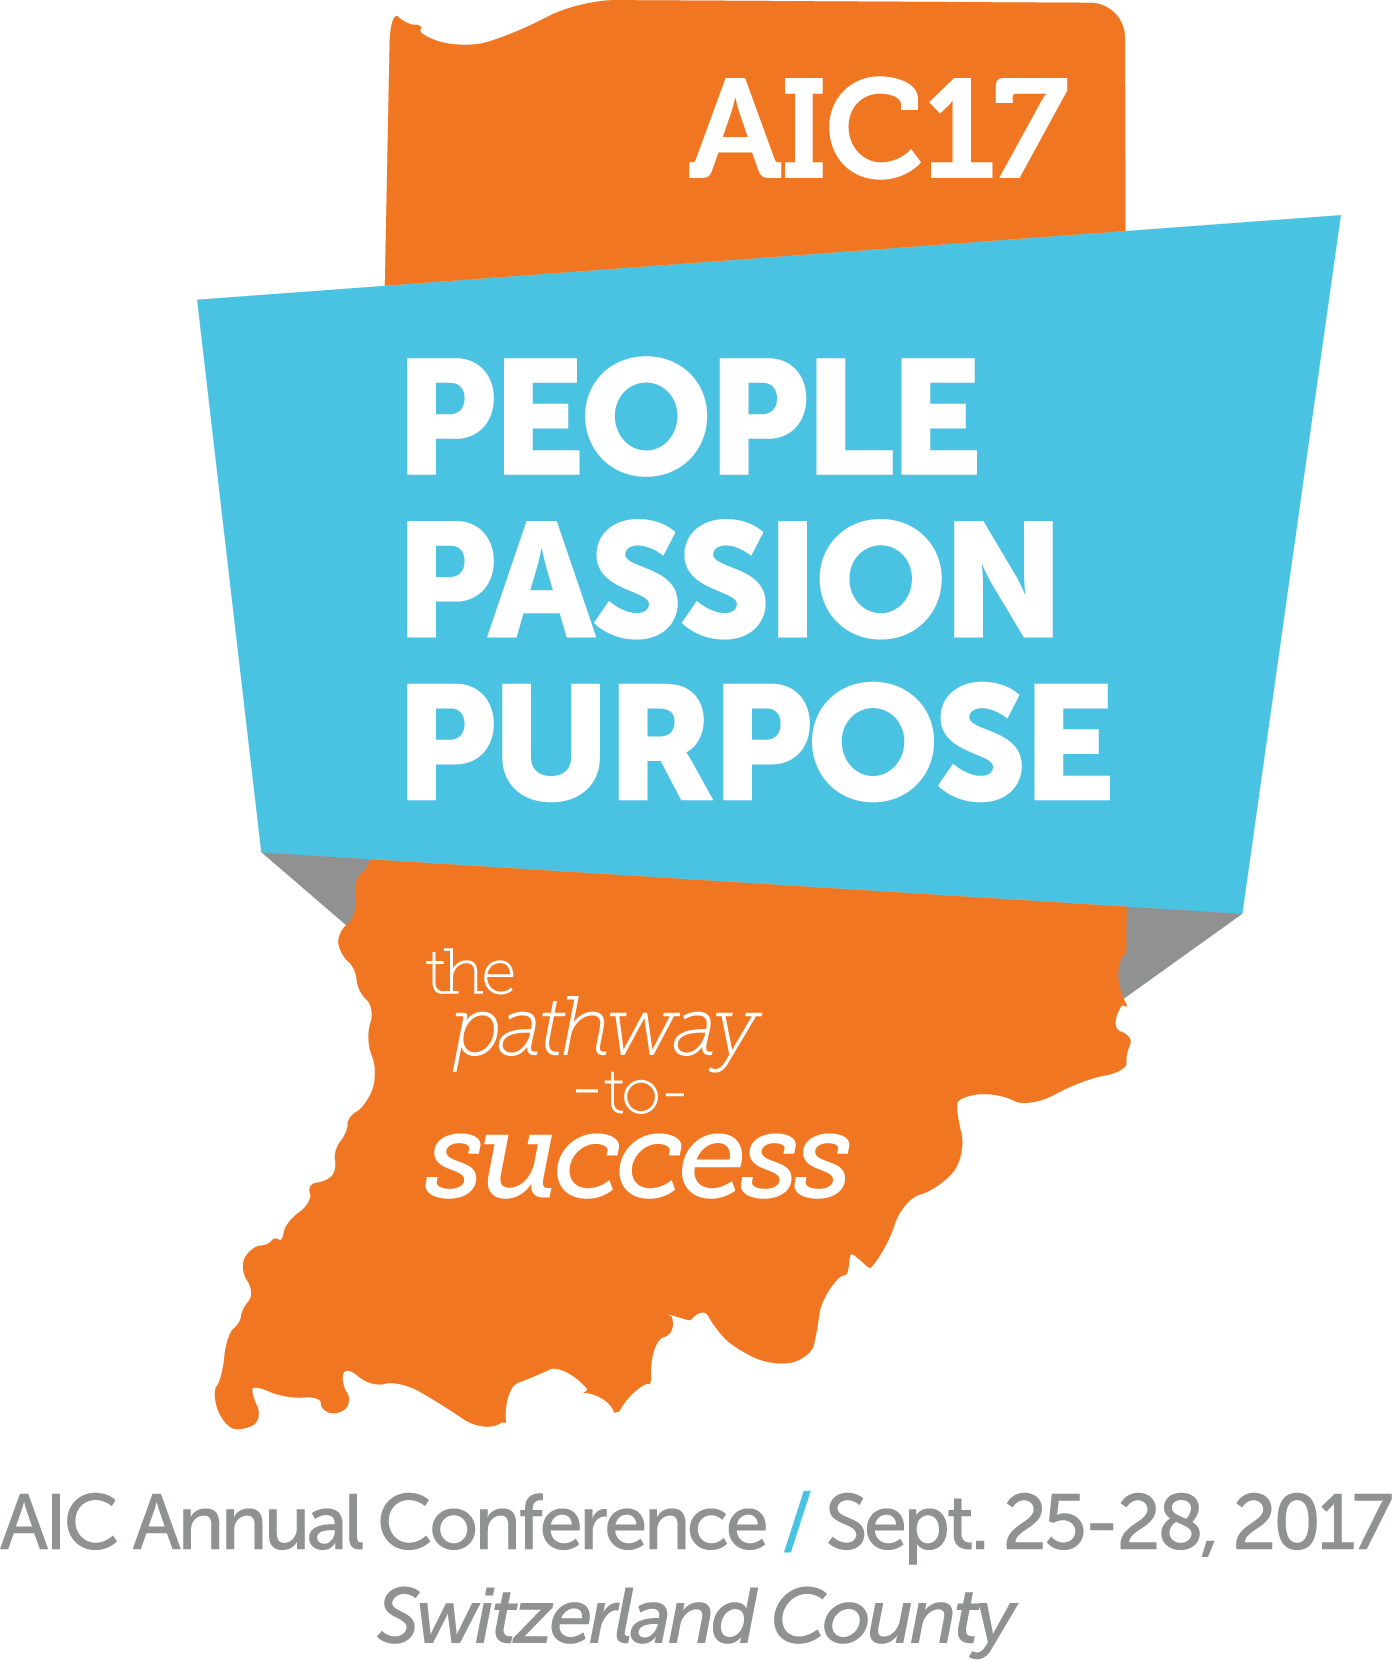 2017 AIC Annual Conference